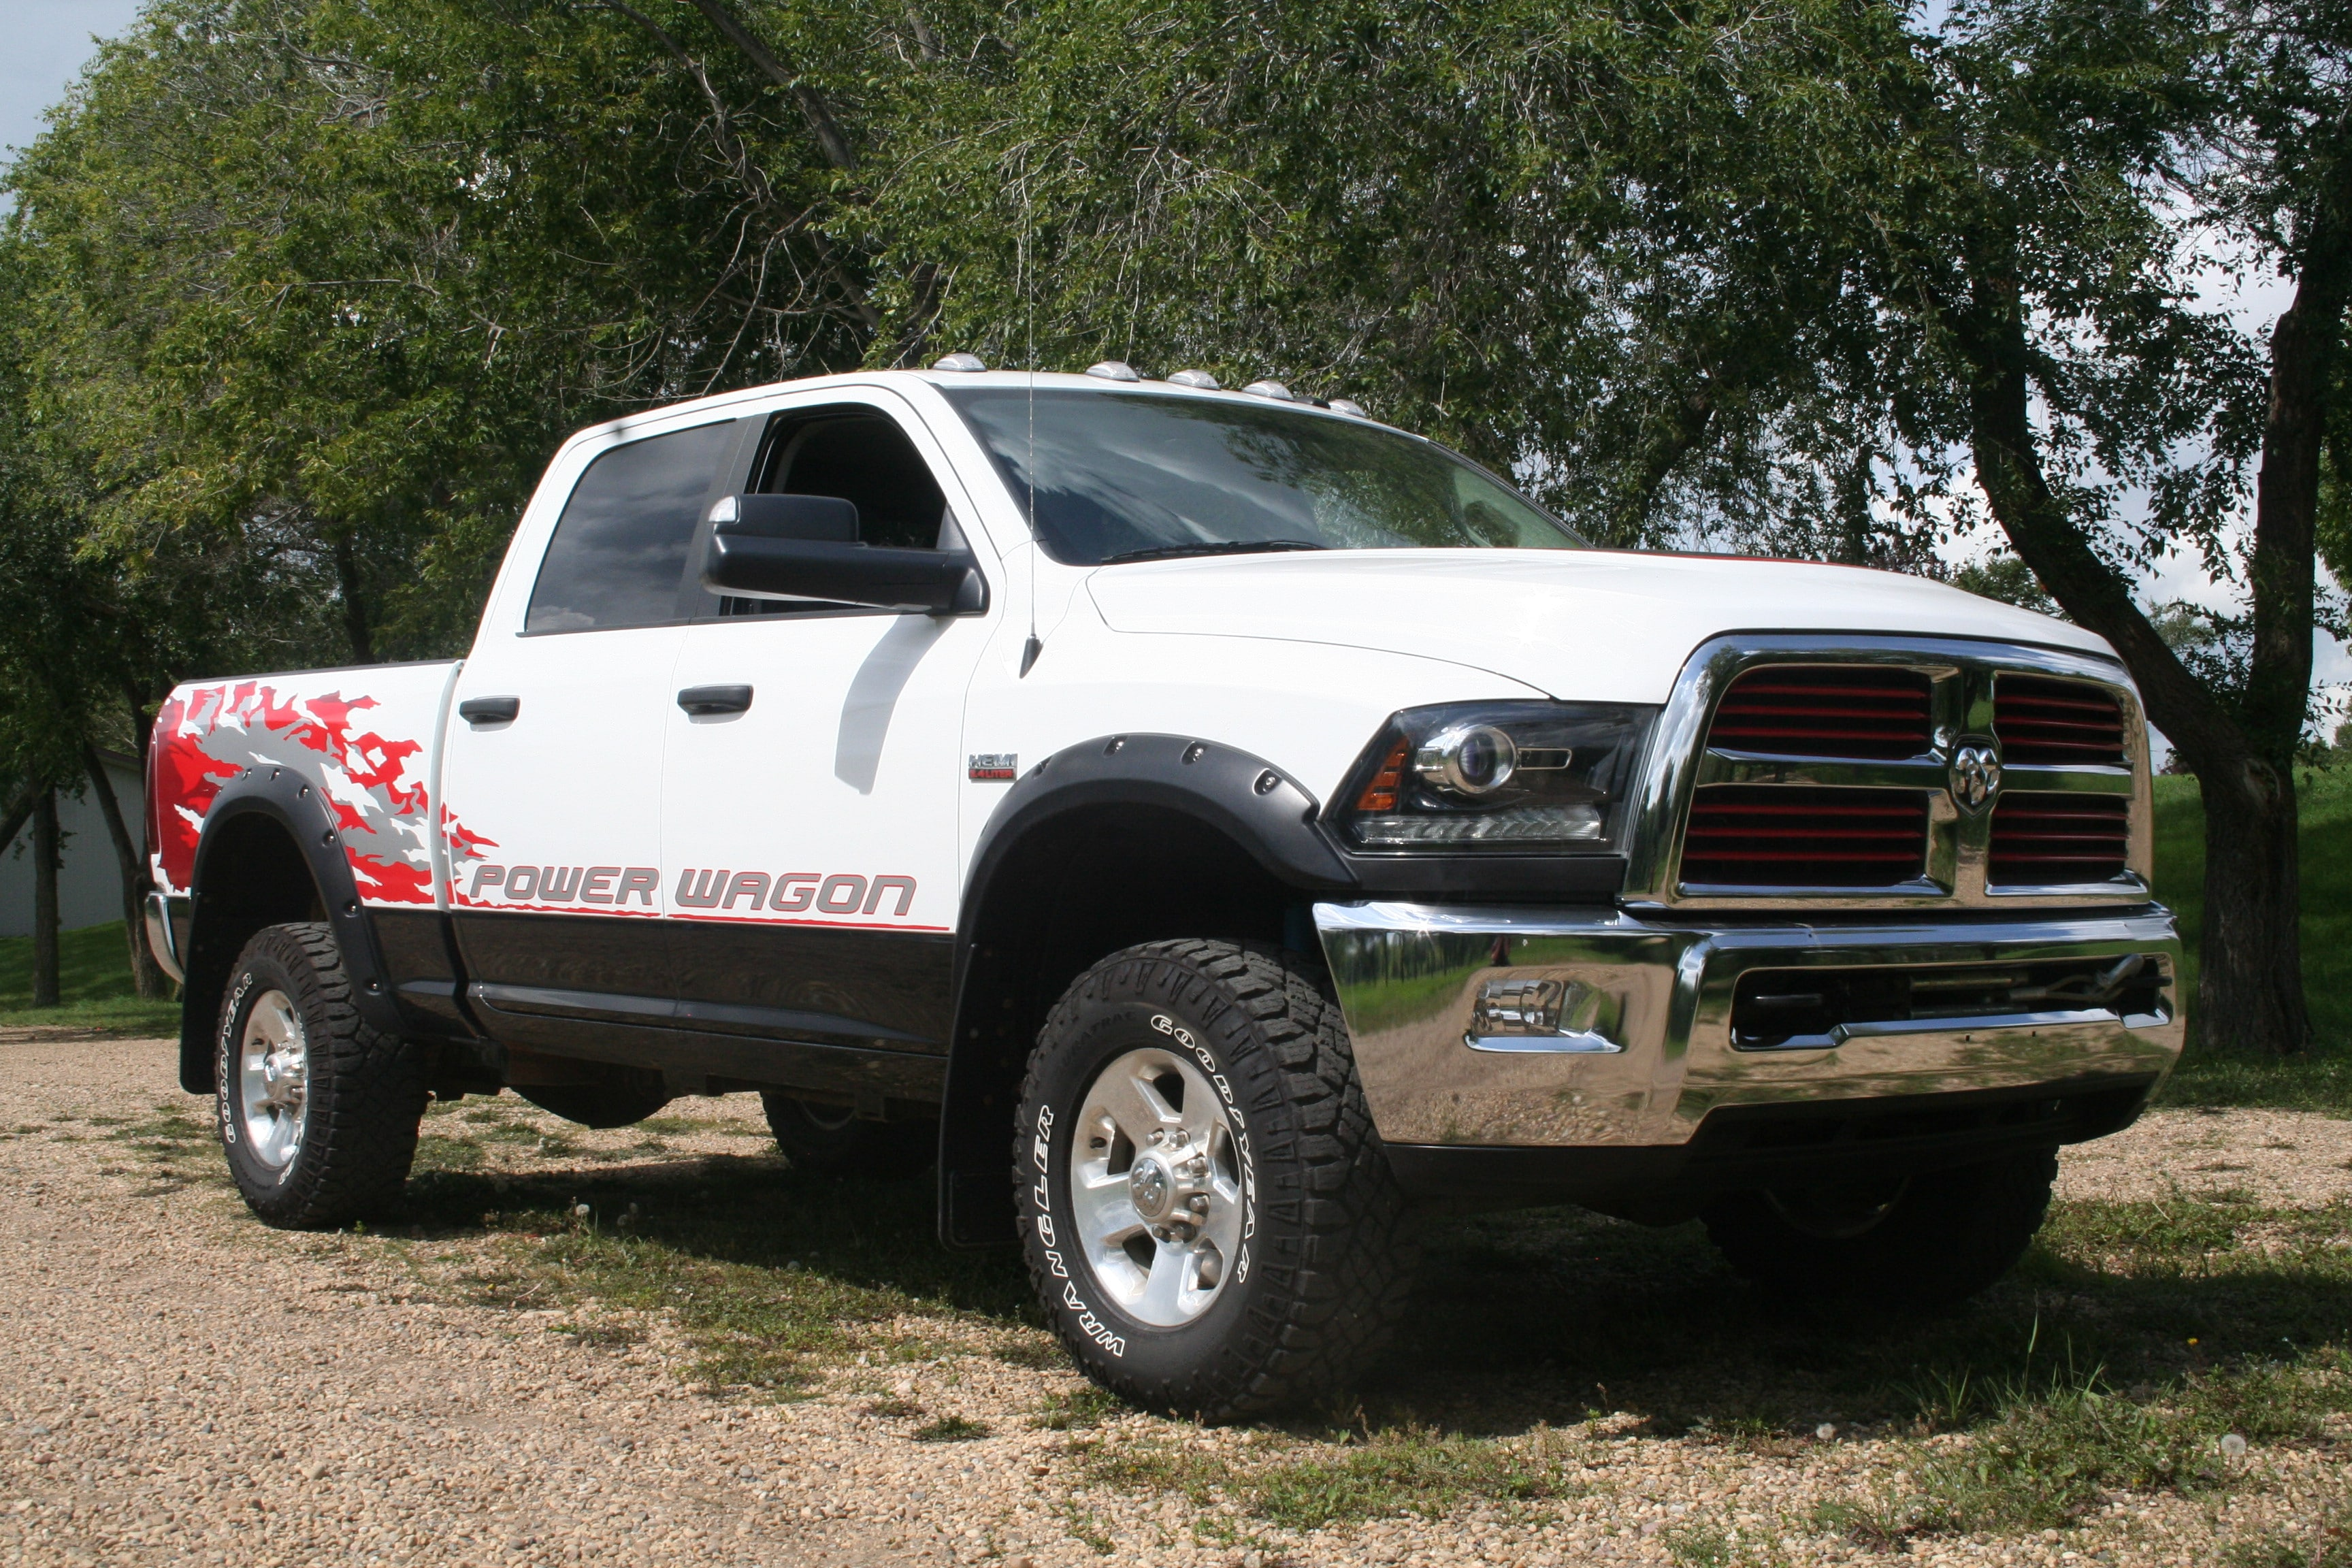 2014 Ram 2500 POWER WAGON, HEATED SEATS AND COOLED SEATS Truck